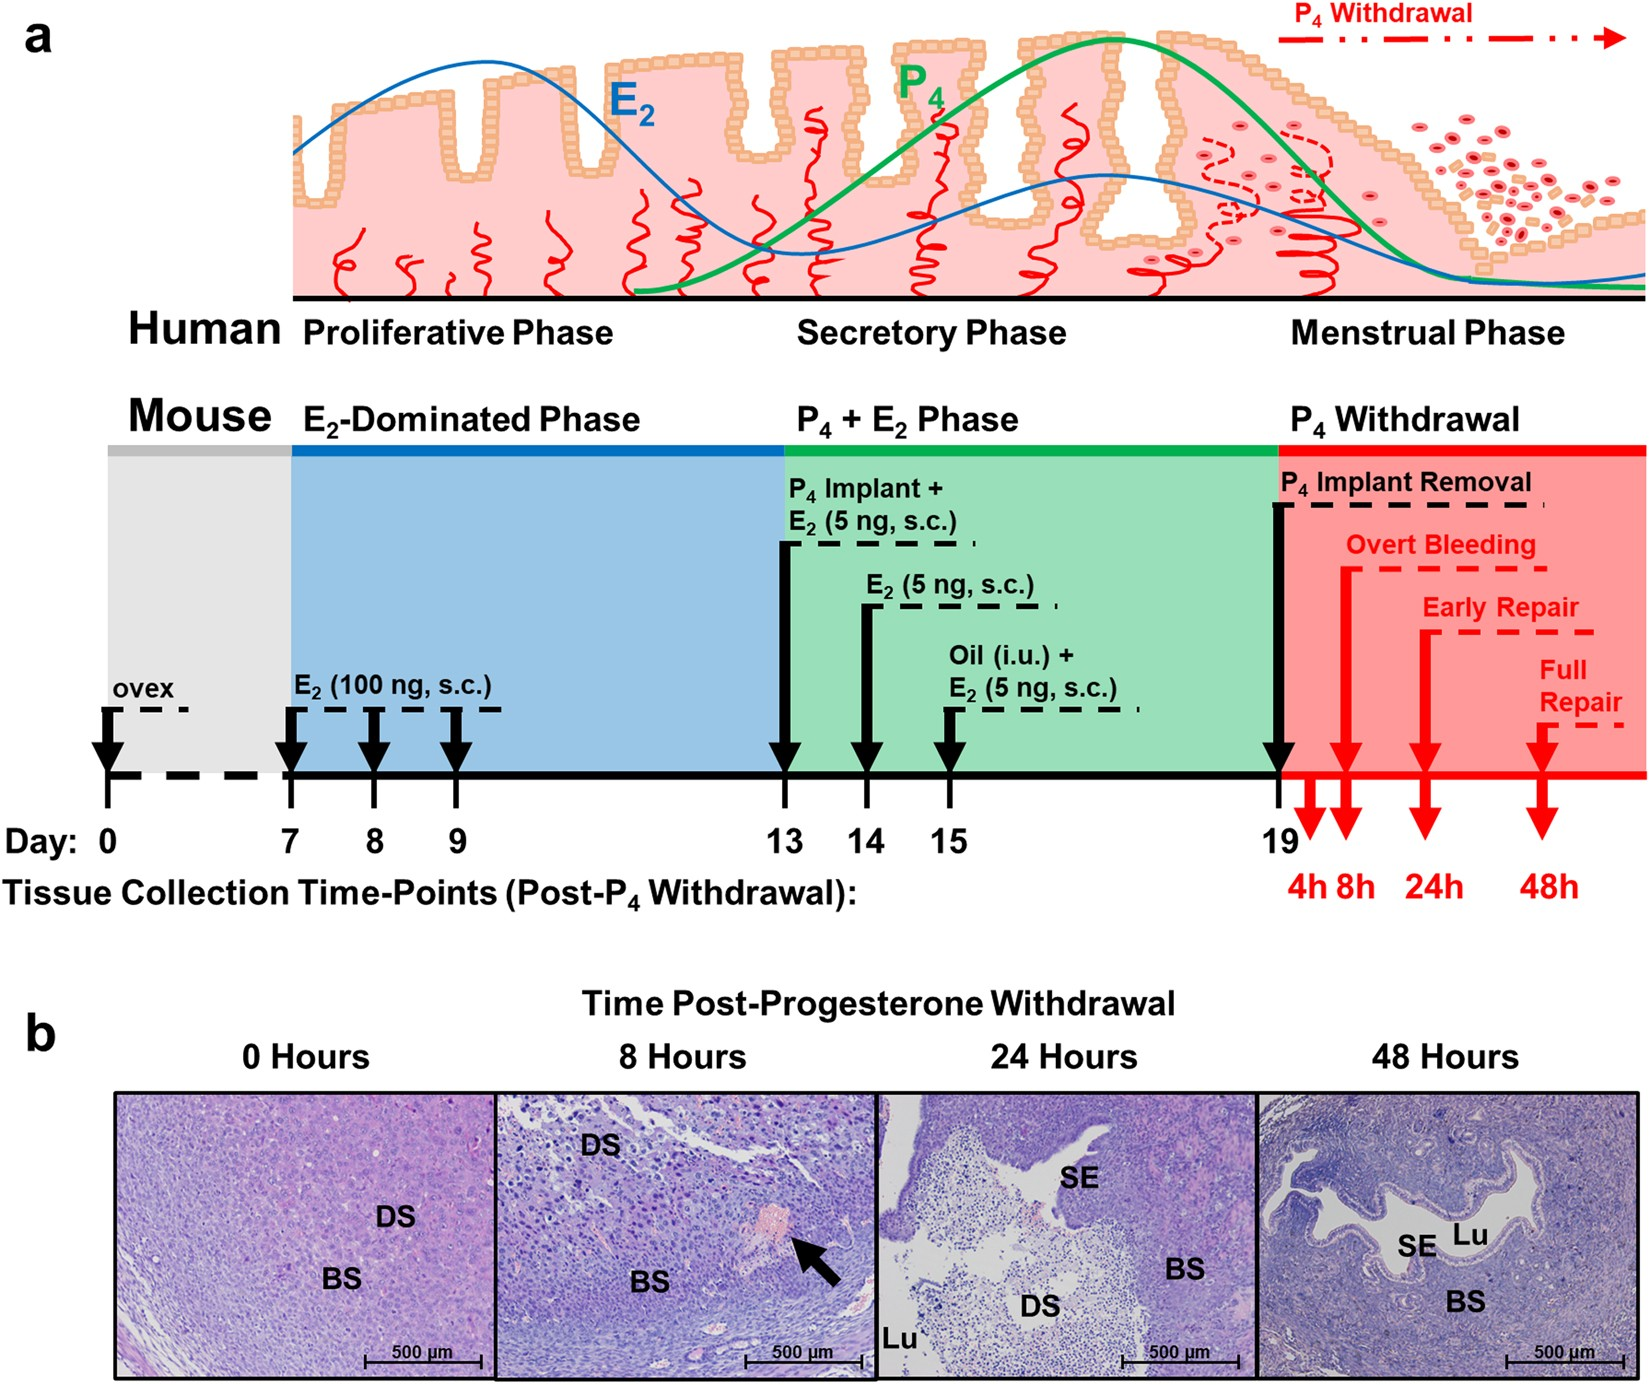 Endometrial apoptosis and neutrophil infiltration during menstruation exhibits spatial and temporal dynamics that are recapitulated in a mouse model